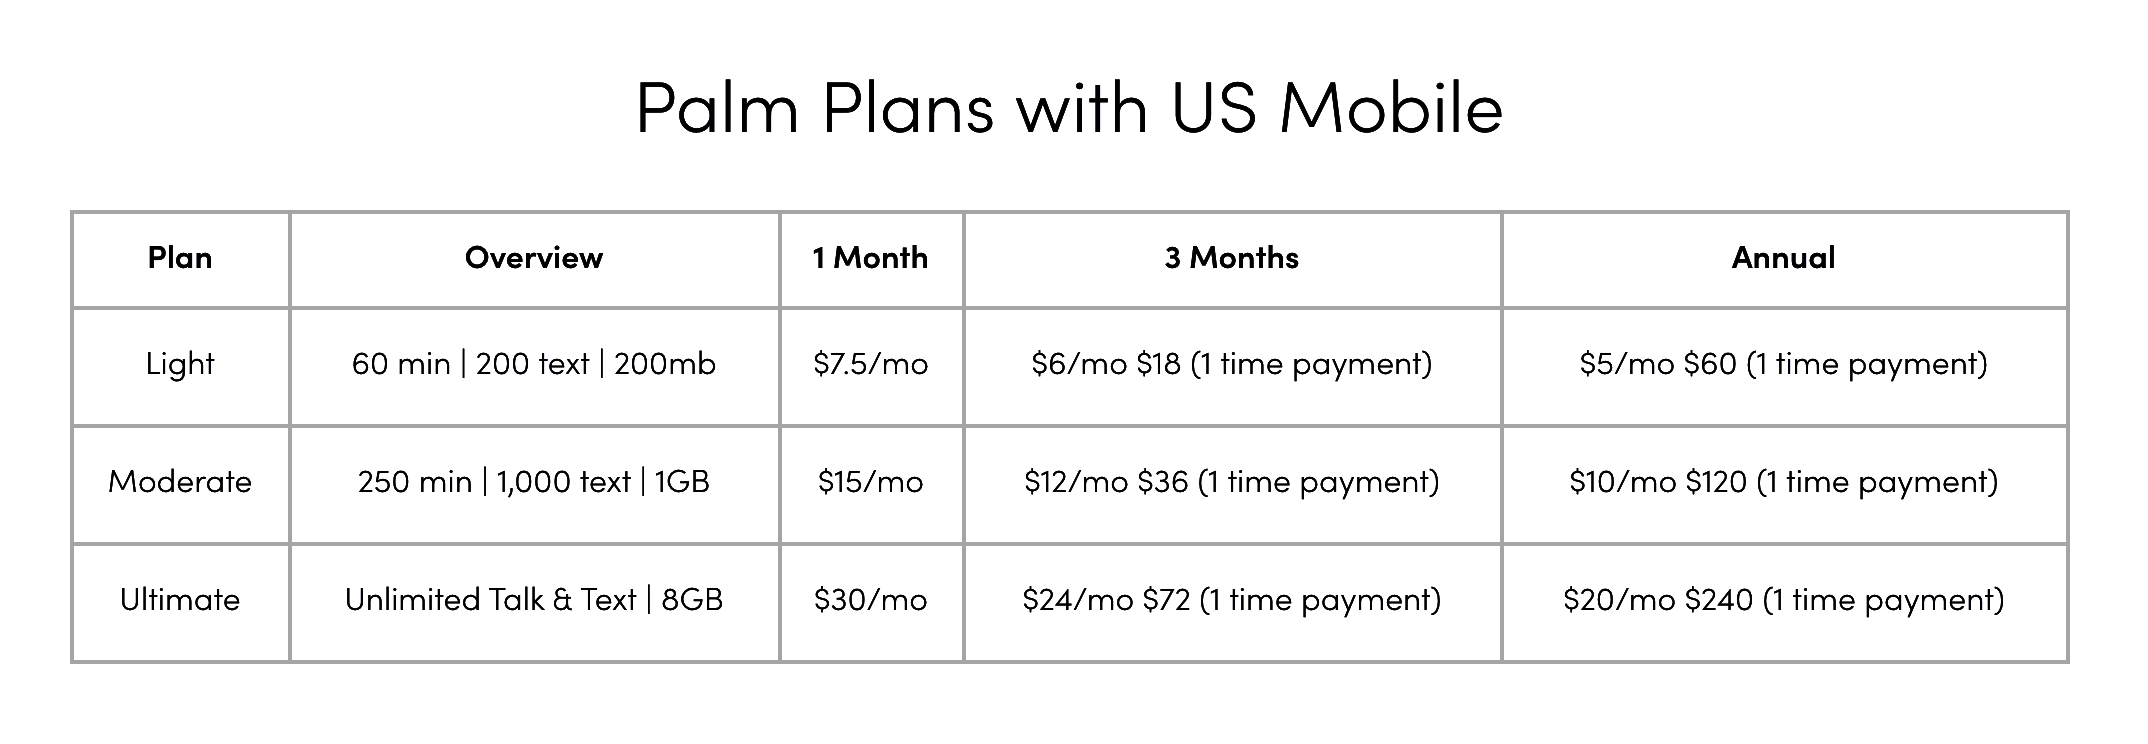 Palm smartphone data plans through US Mobile starting at $5/month